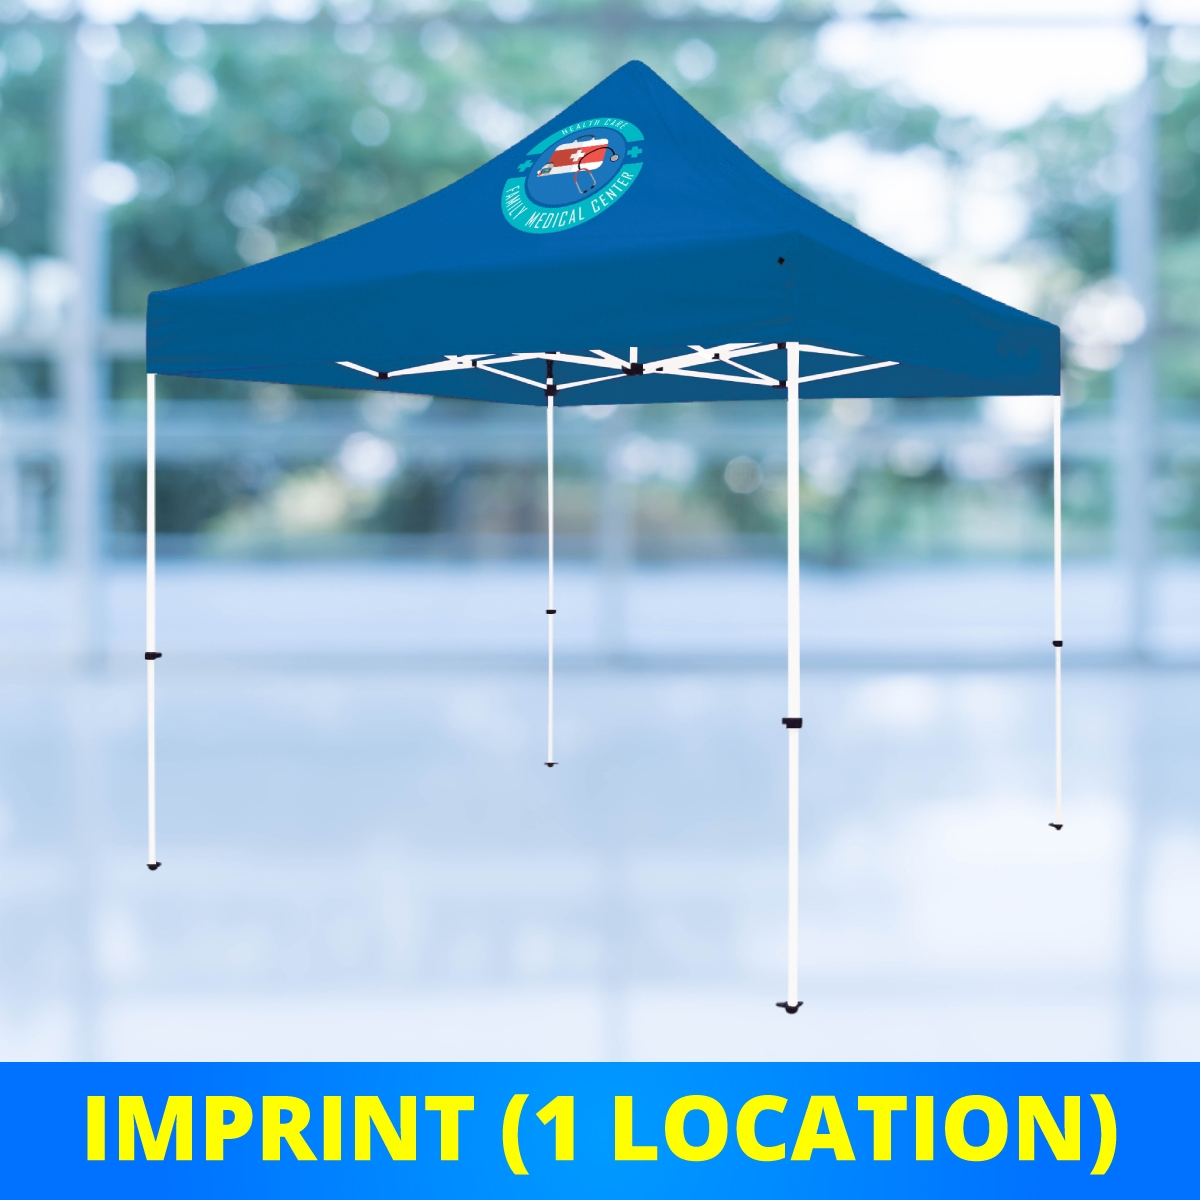 10 x 10 Select Canopy 30mm Square Steel Frame Tent - UV Printed Full-Color Imprint (1 Location)